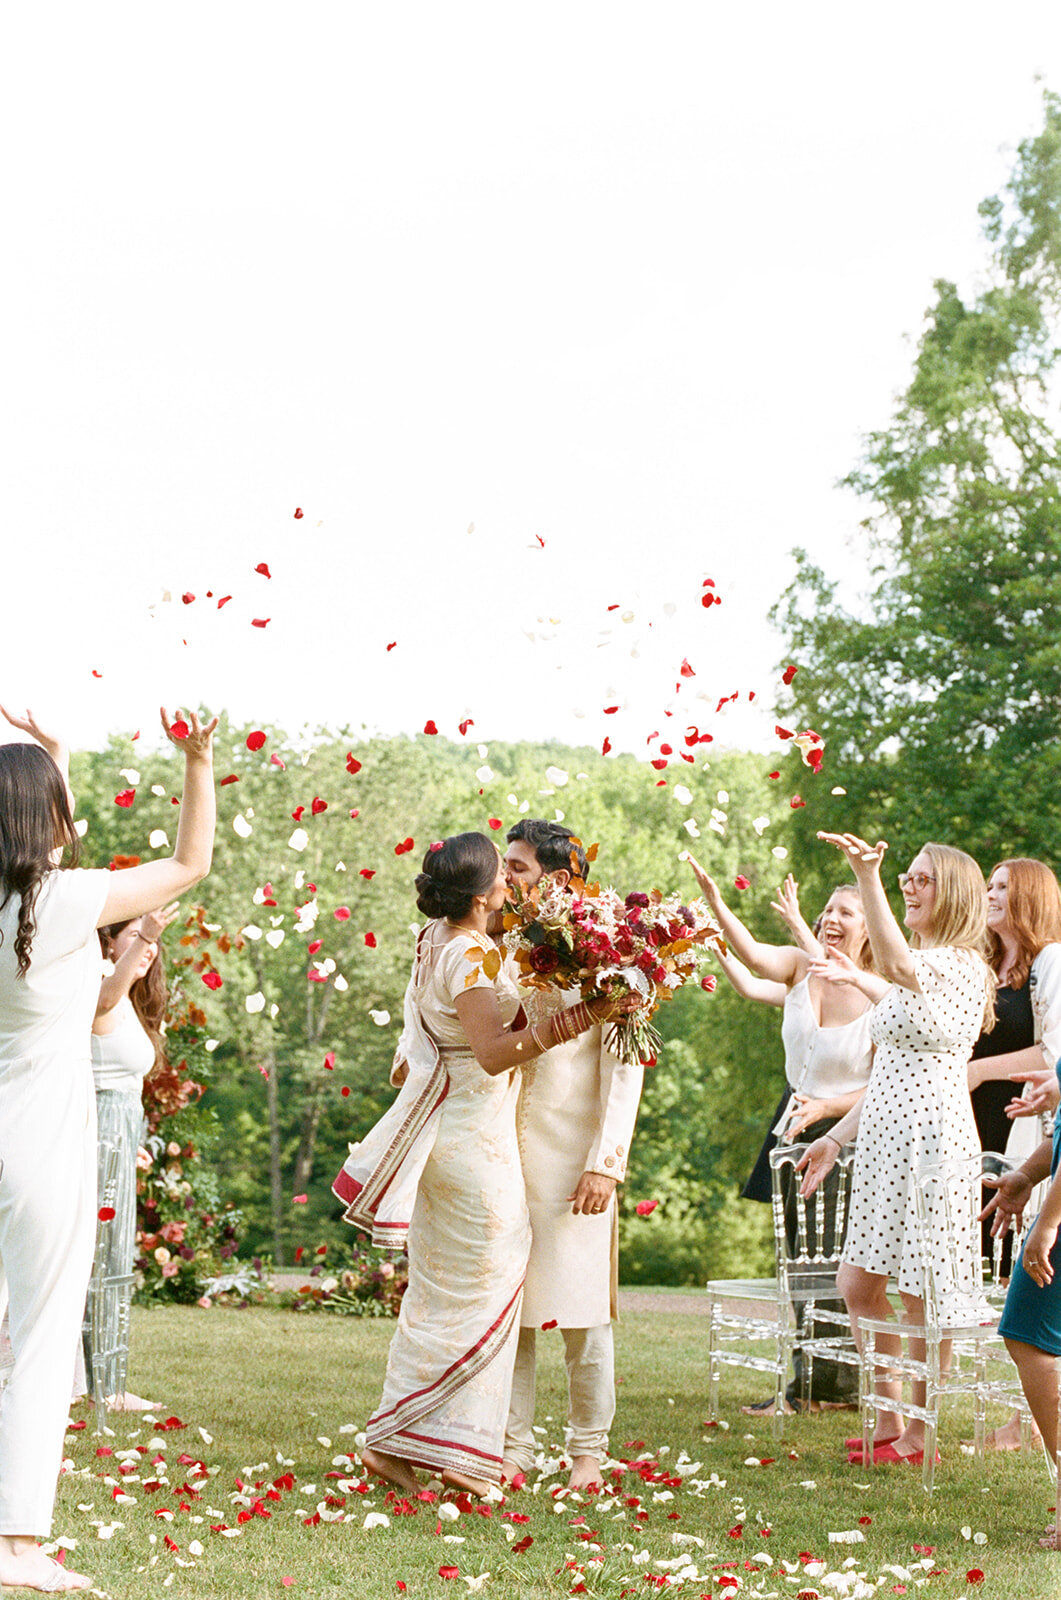 Freestanding wedding ceremony backdrop with lush greenery and a bright flowers. Petal toss at the end of the wedding ceremony. Nashville wedding floral design by Rosemary & Finch.